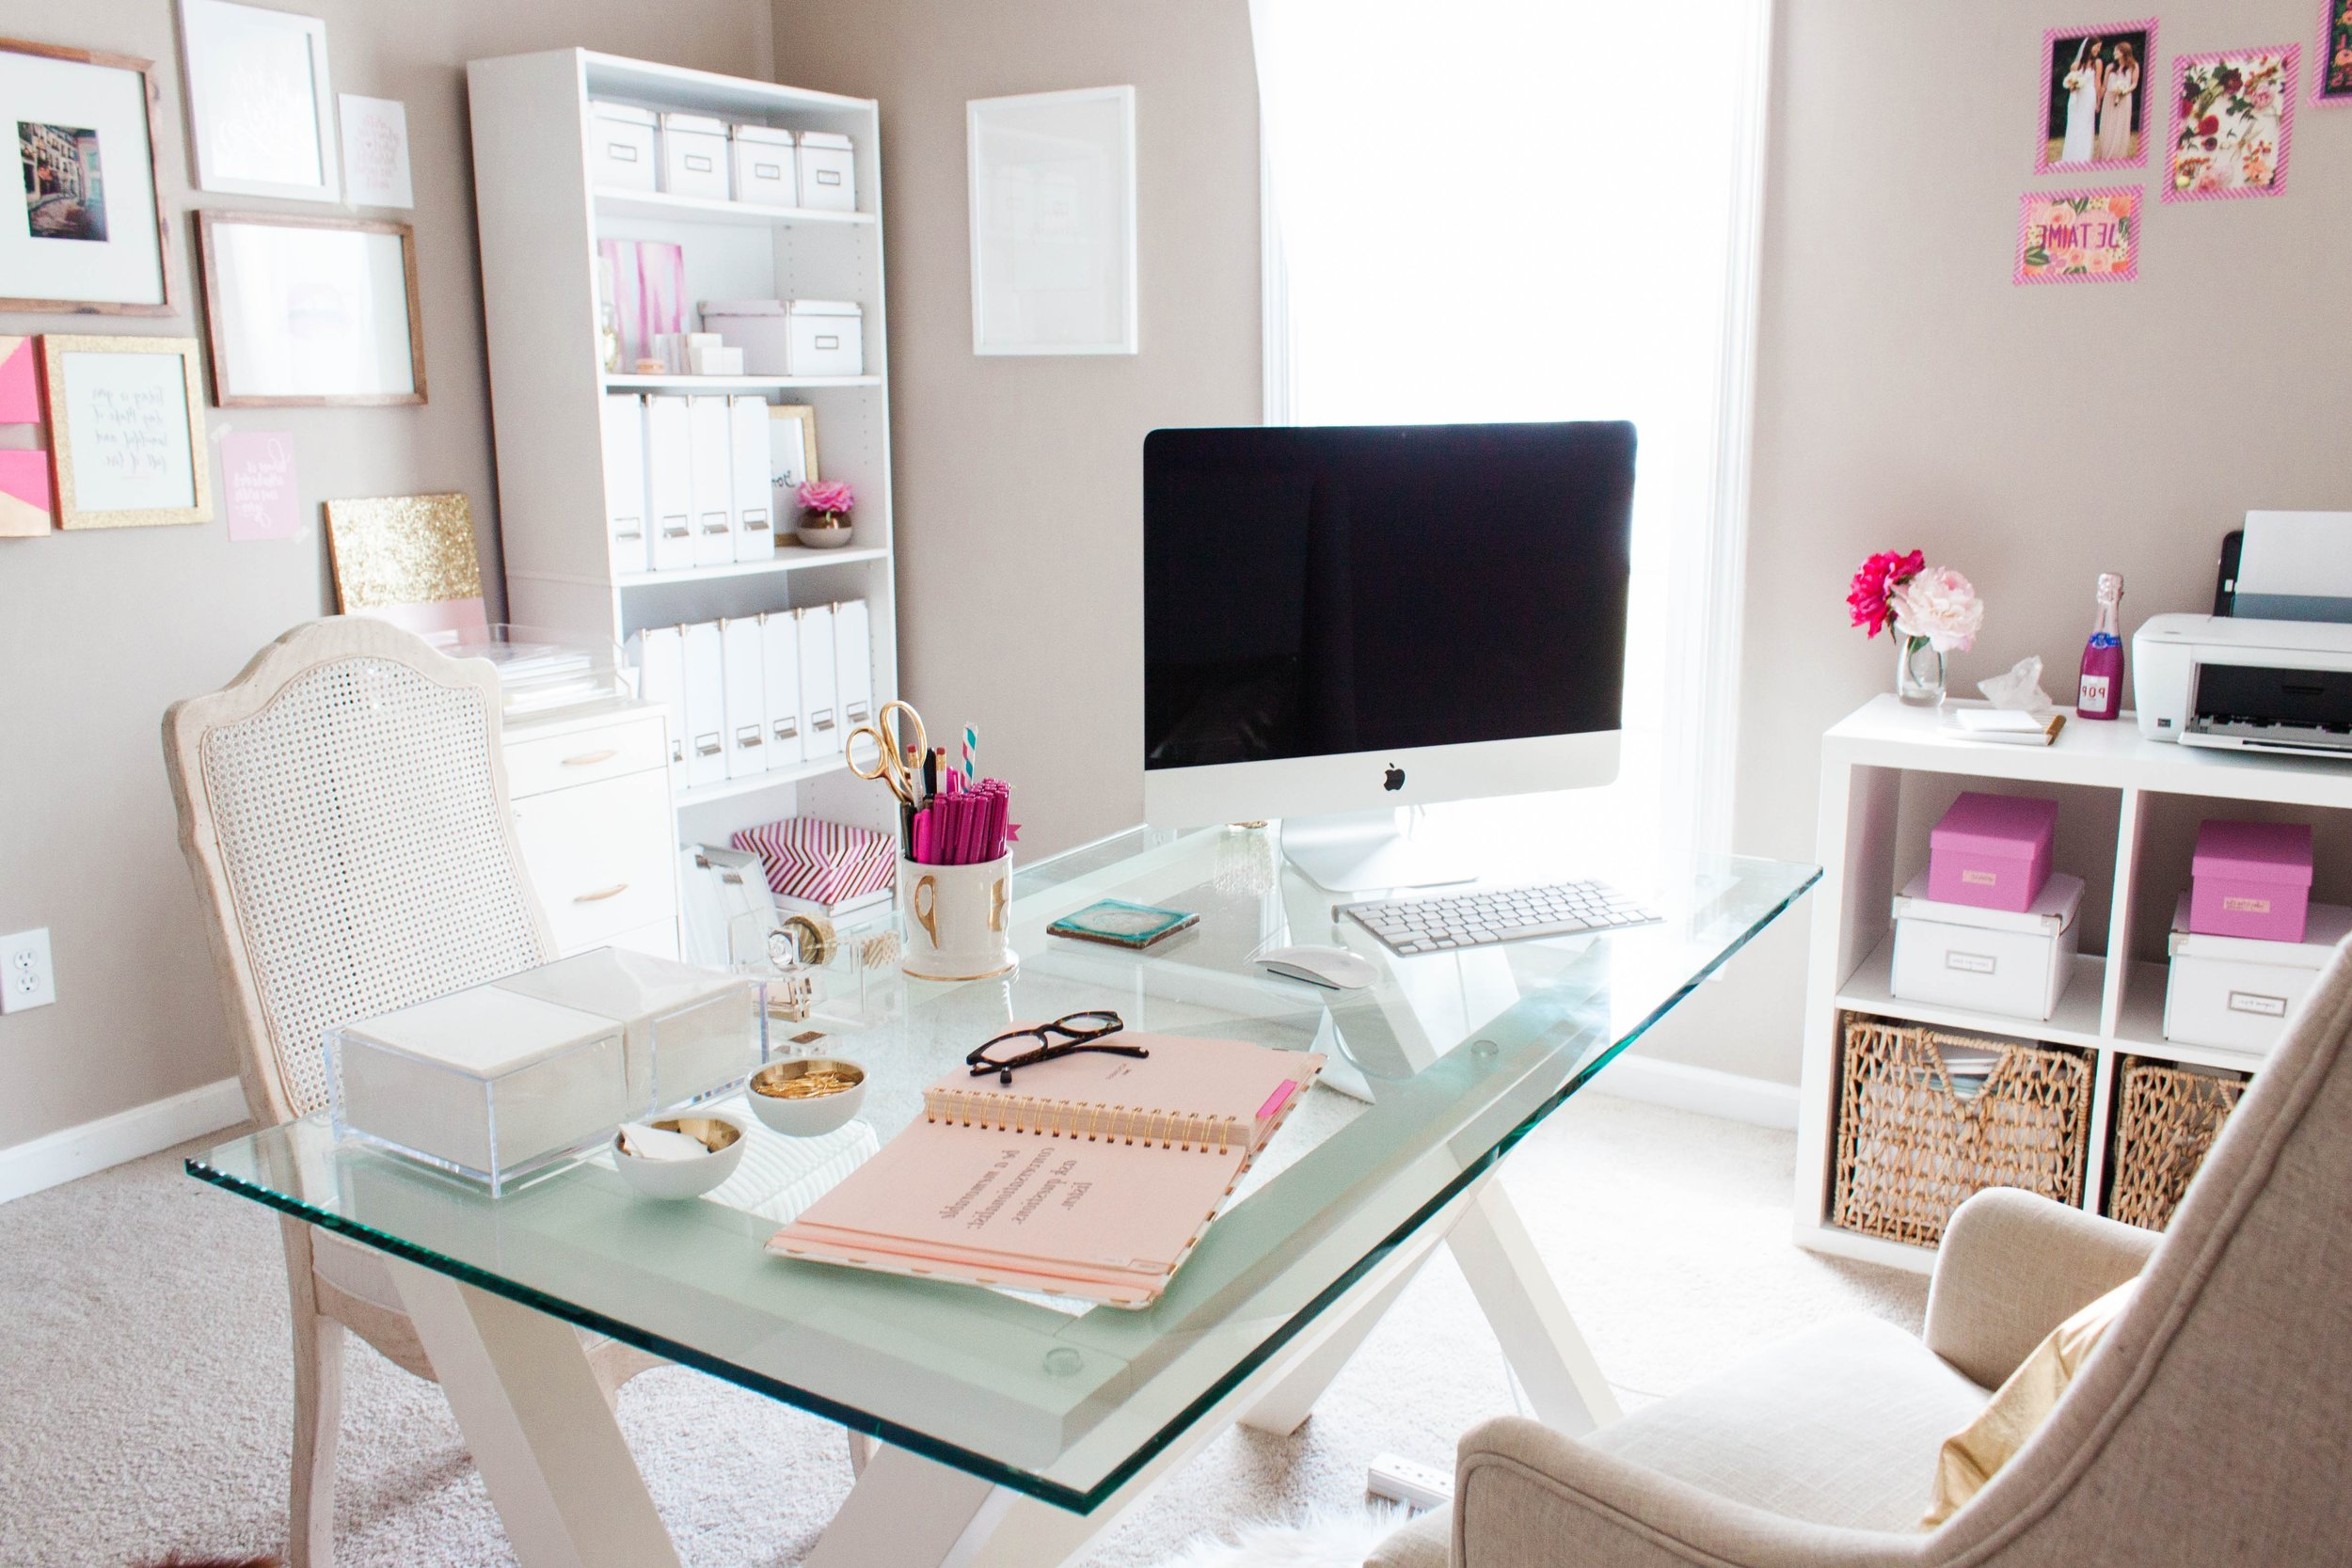 Professional Organizing &Space Management - Creating custom organizing solutions, to make your space more functional and life, more simple.